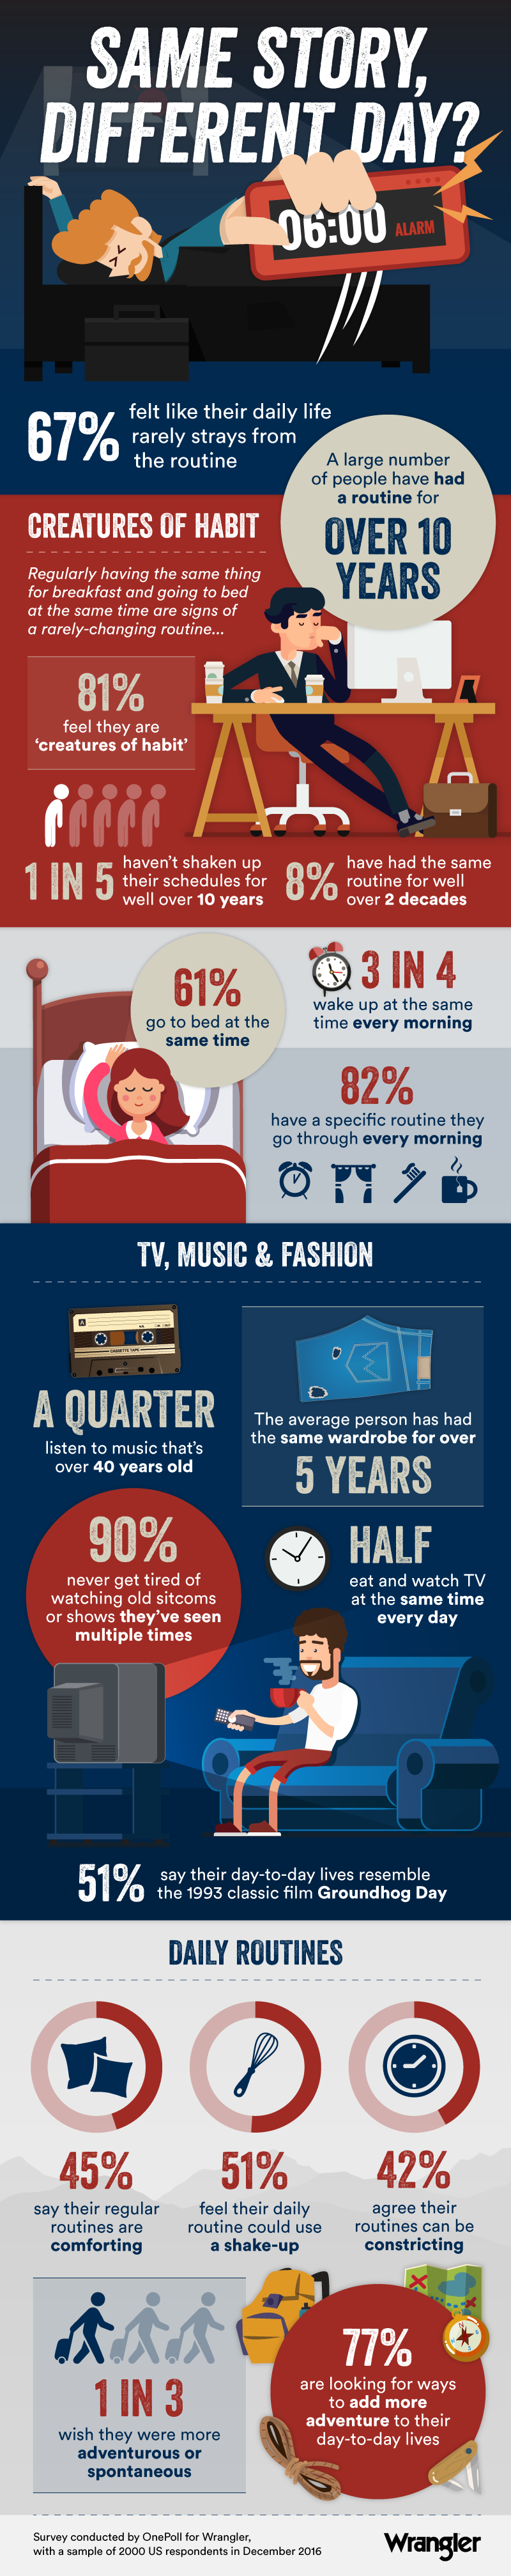 Wrangler Daily Routine Infographic